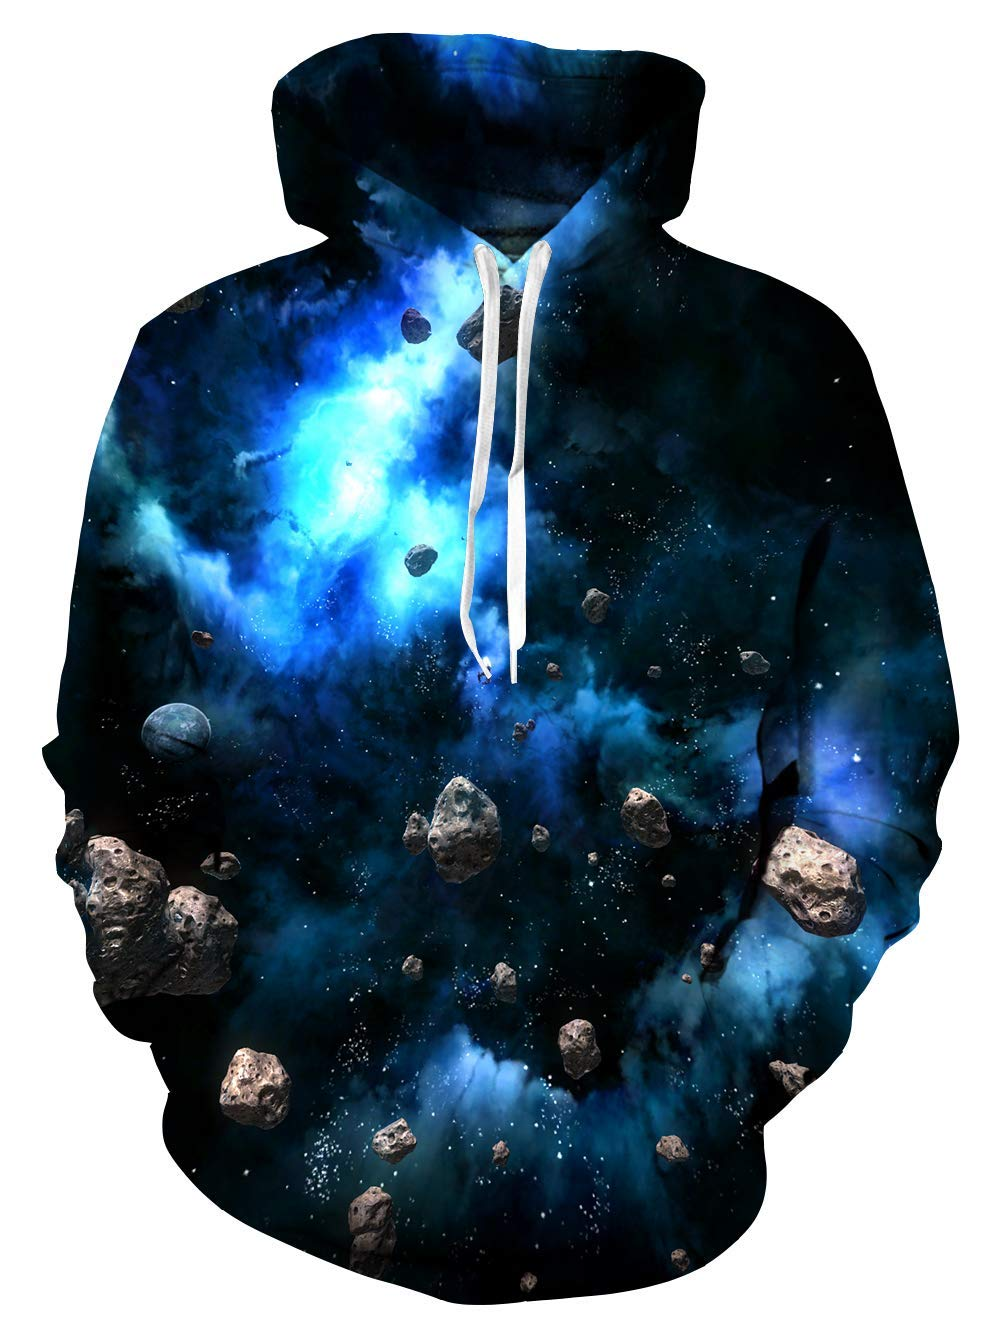 chicolife Unisex 3D Novelty Galaxy Print Pockets Pullover Hooded Sweatshirt for Women Men 15Y+, XXL